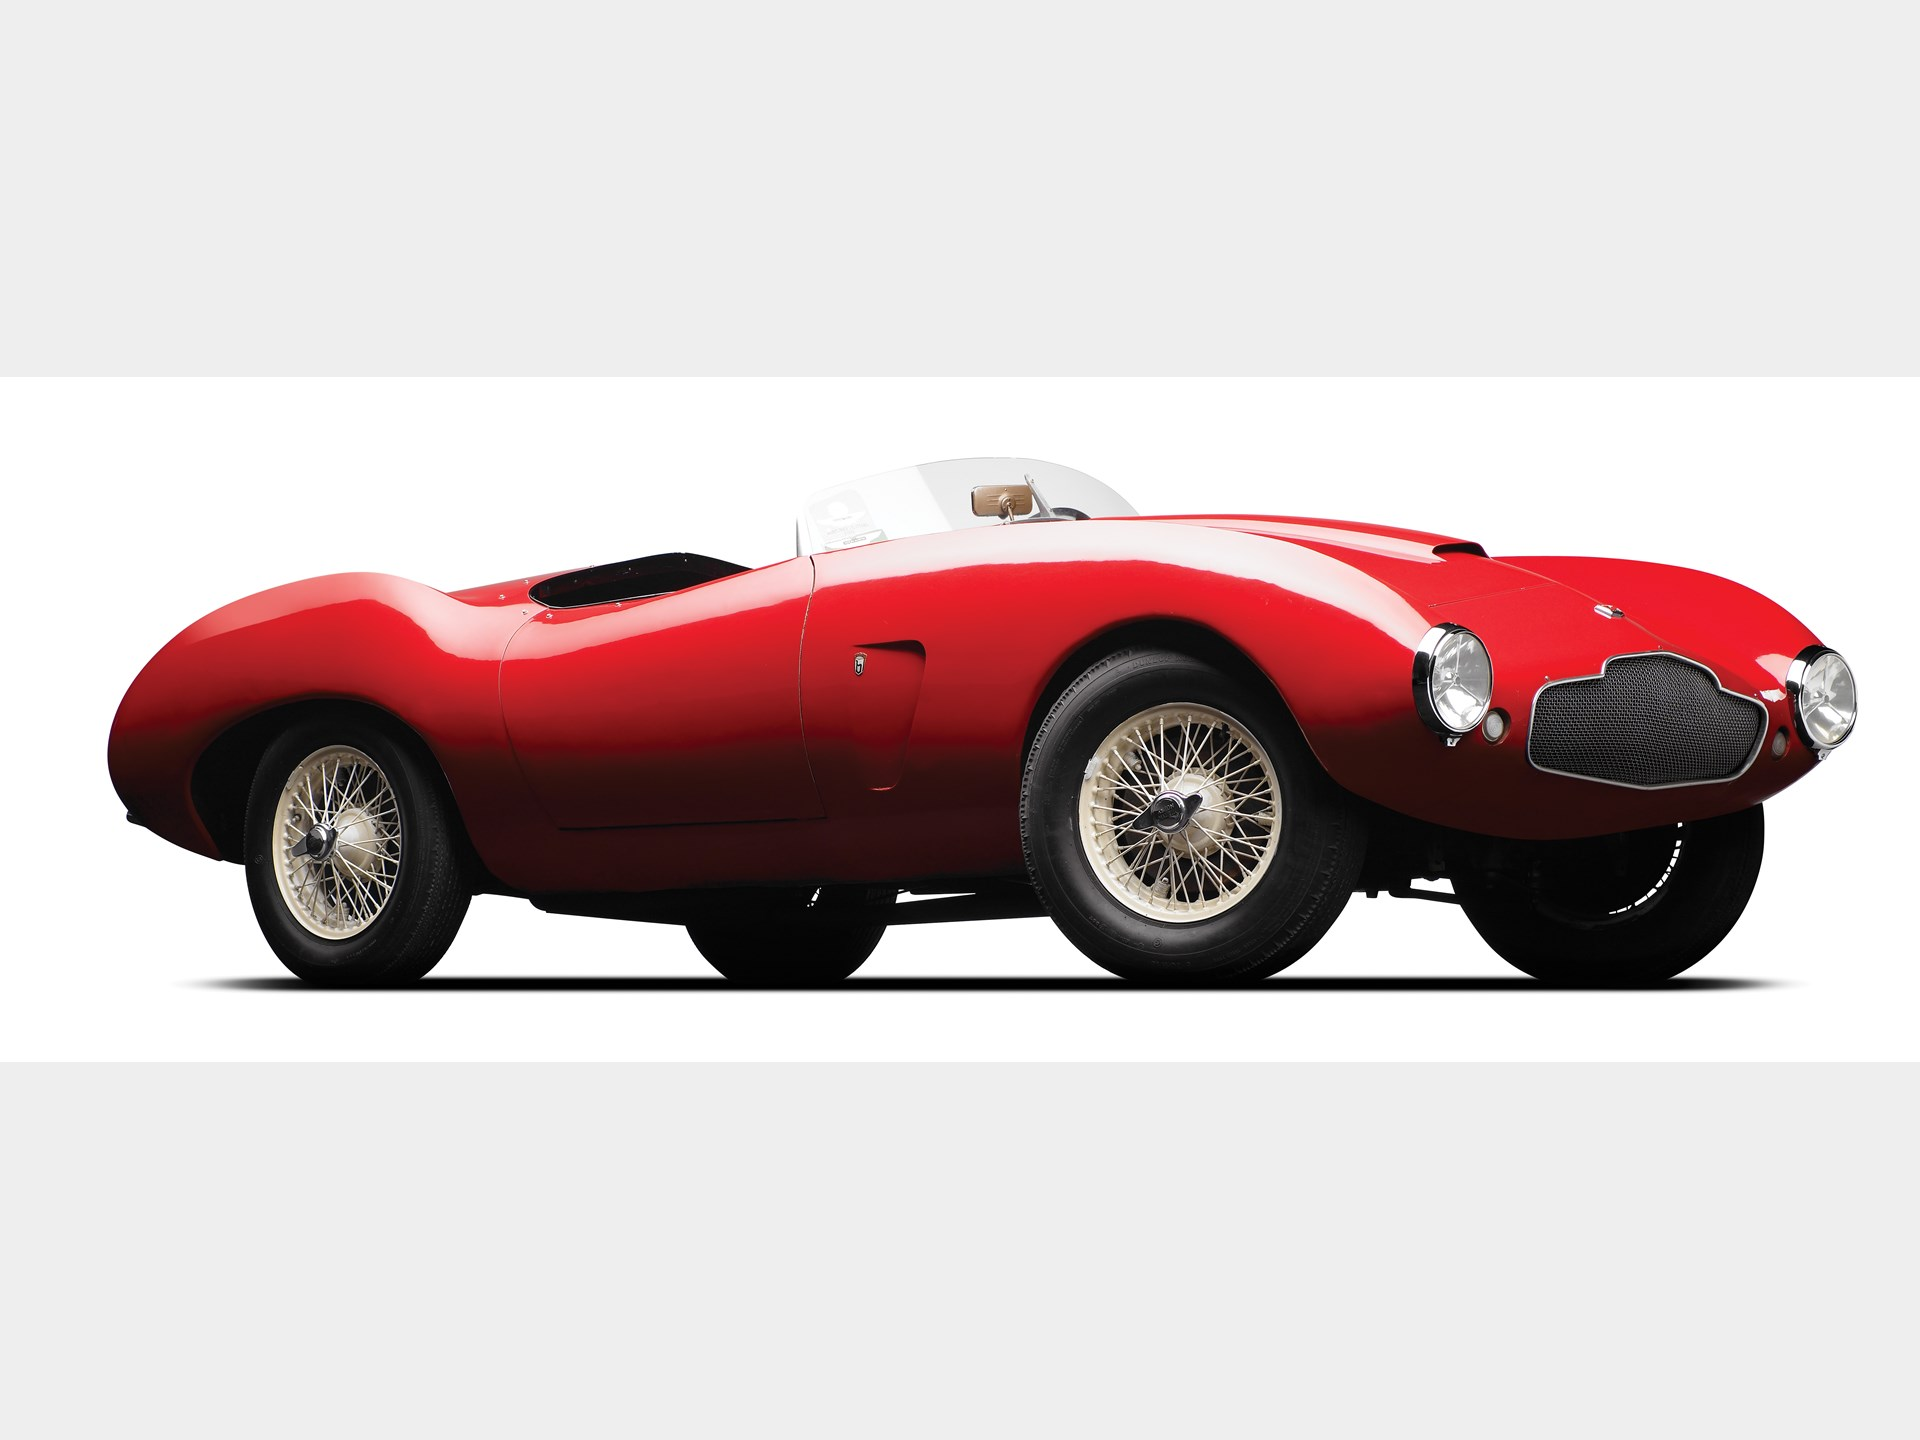 rm sotheby s 1954 aston martin db2 4 competition spider by bertone rh rmsothebys com